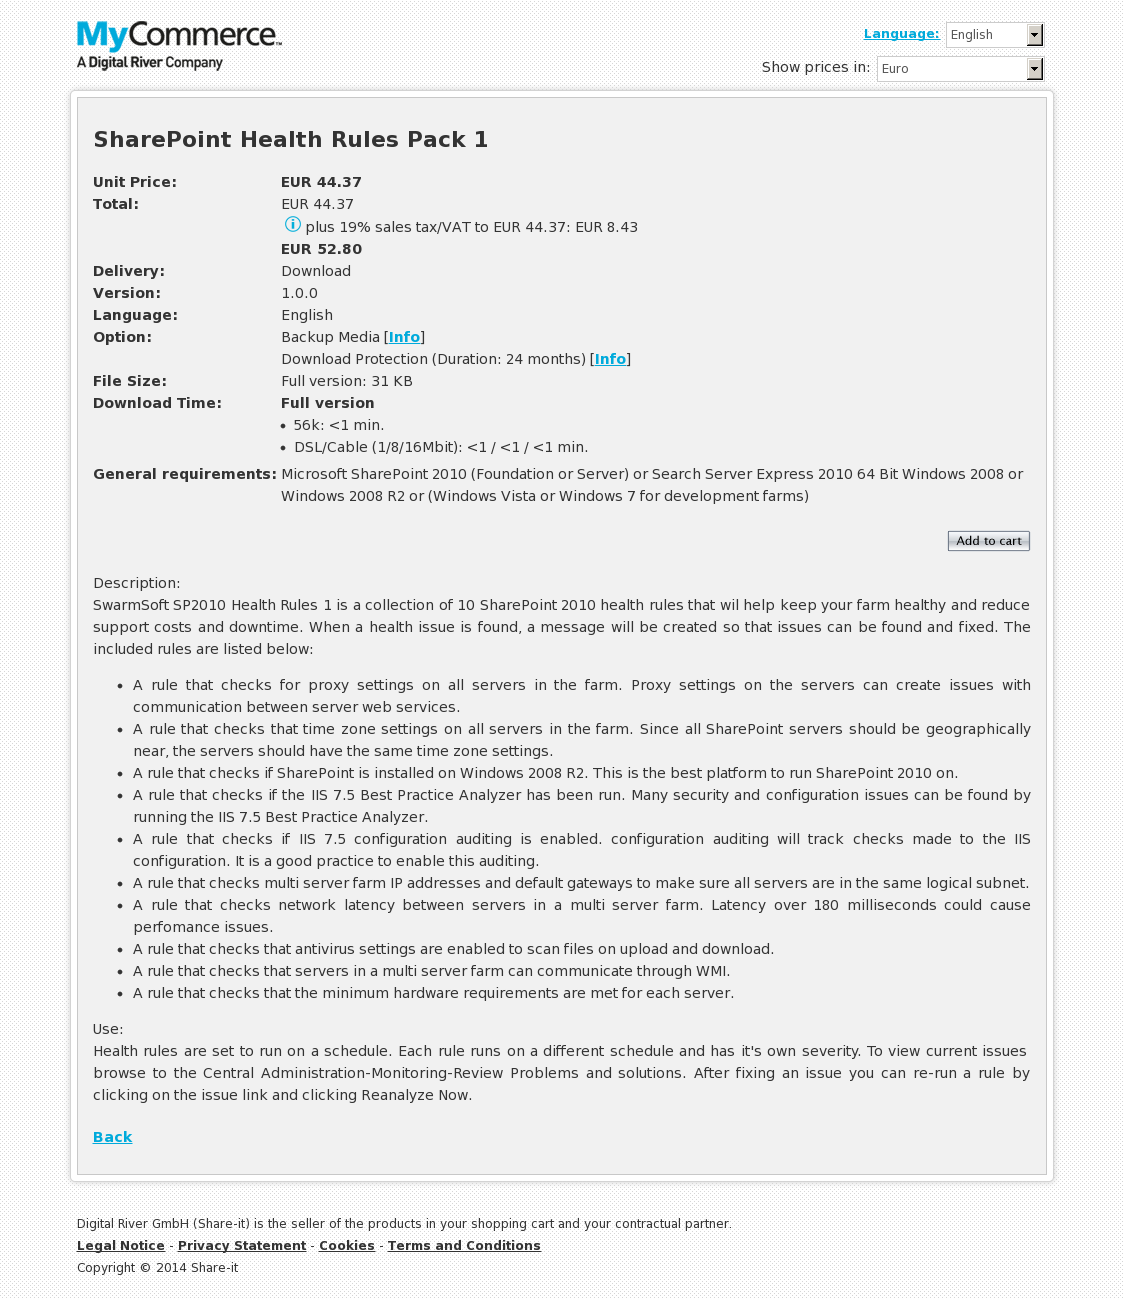 SharePoint Health Rules Pack 1